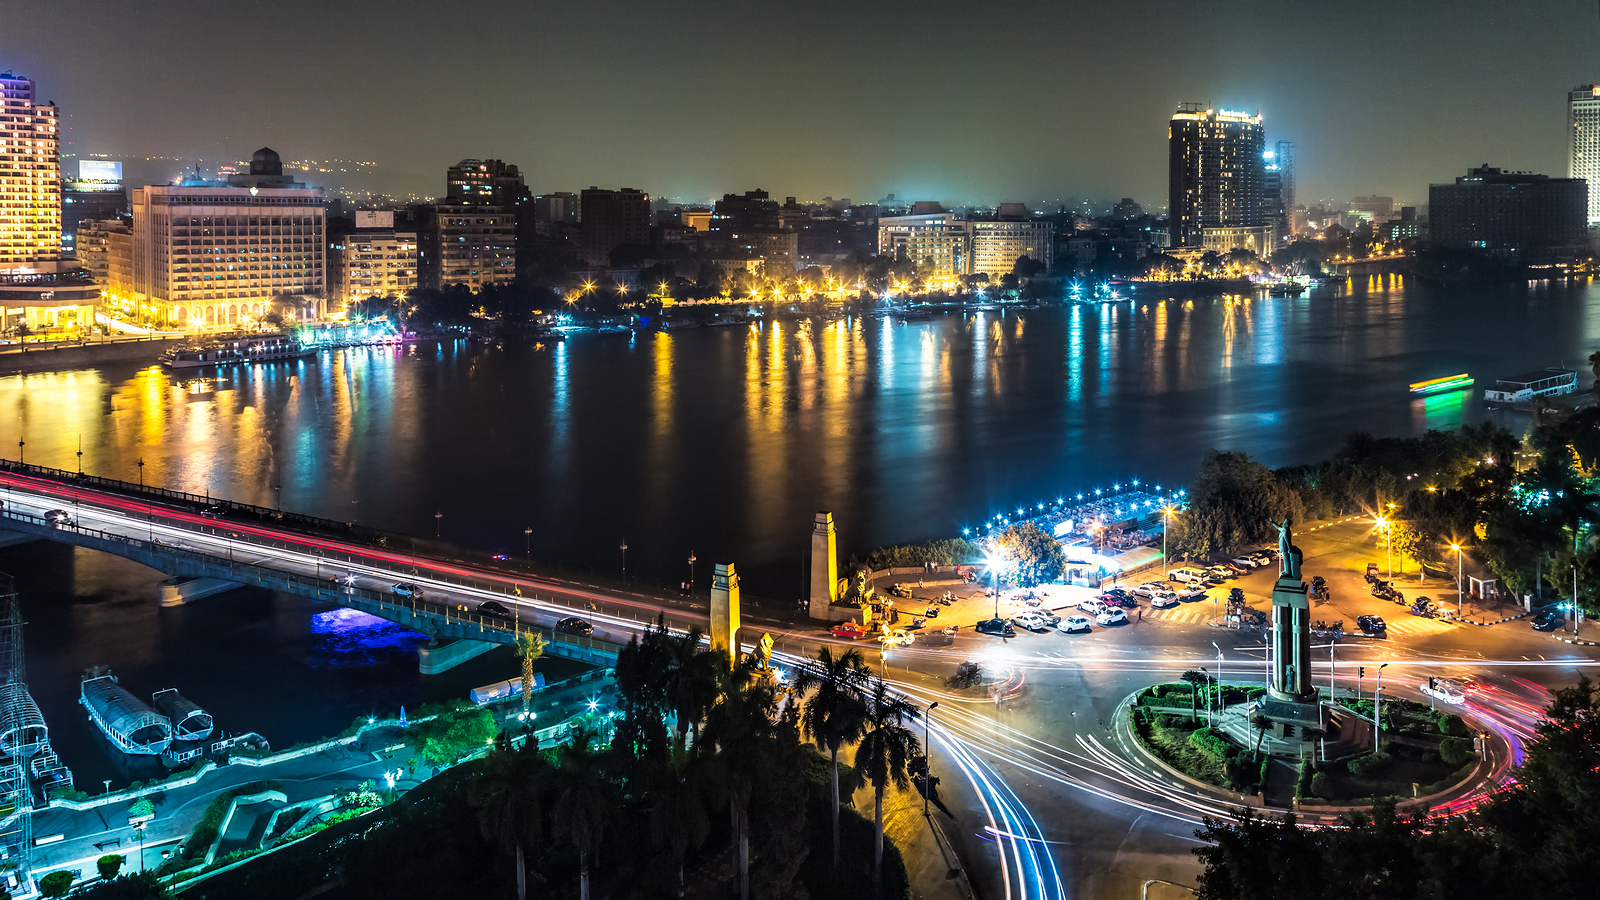 the dissent in egypt No words could have been more unthinkable during the arab spring protests of 2011, when egypt's interior ministry was reviled for its ruthless repression of dissent.